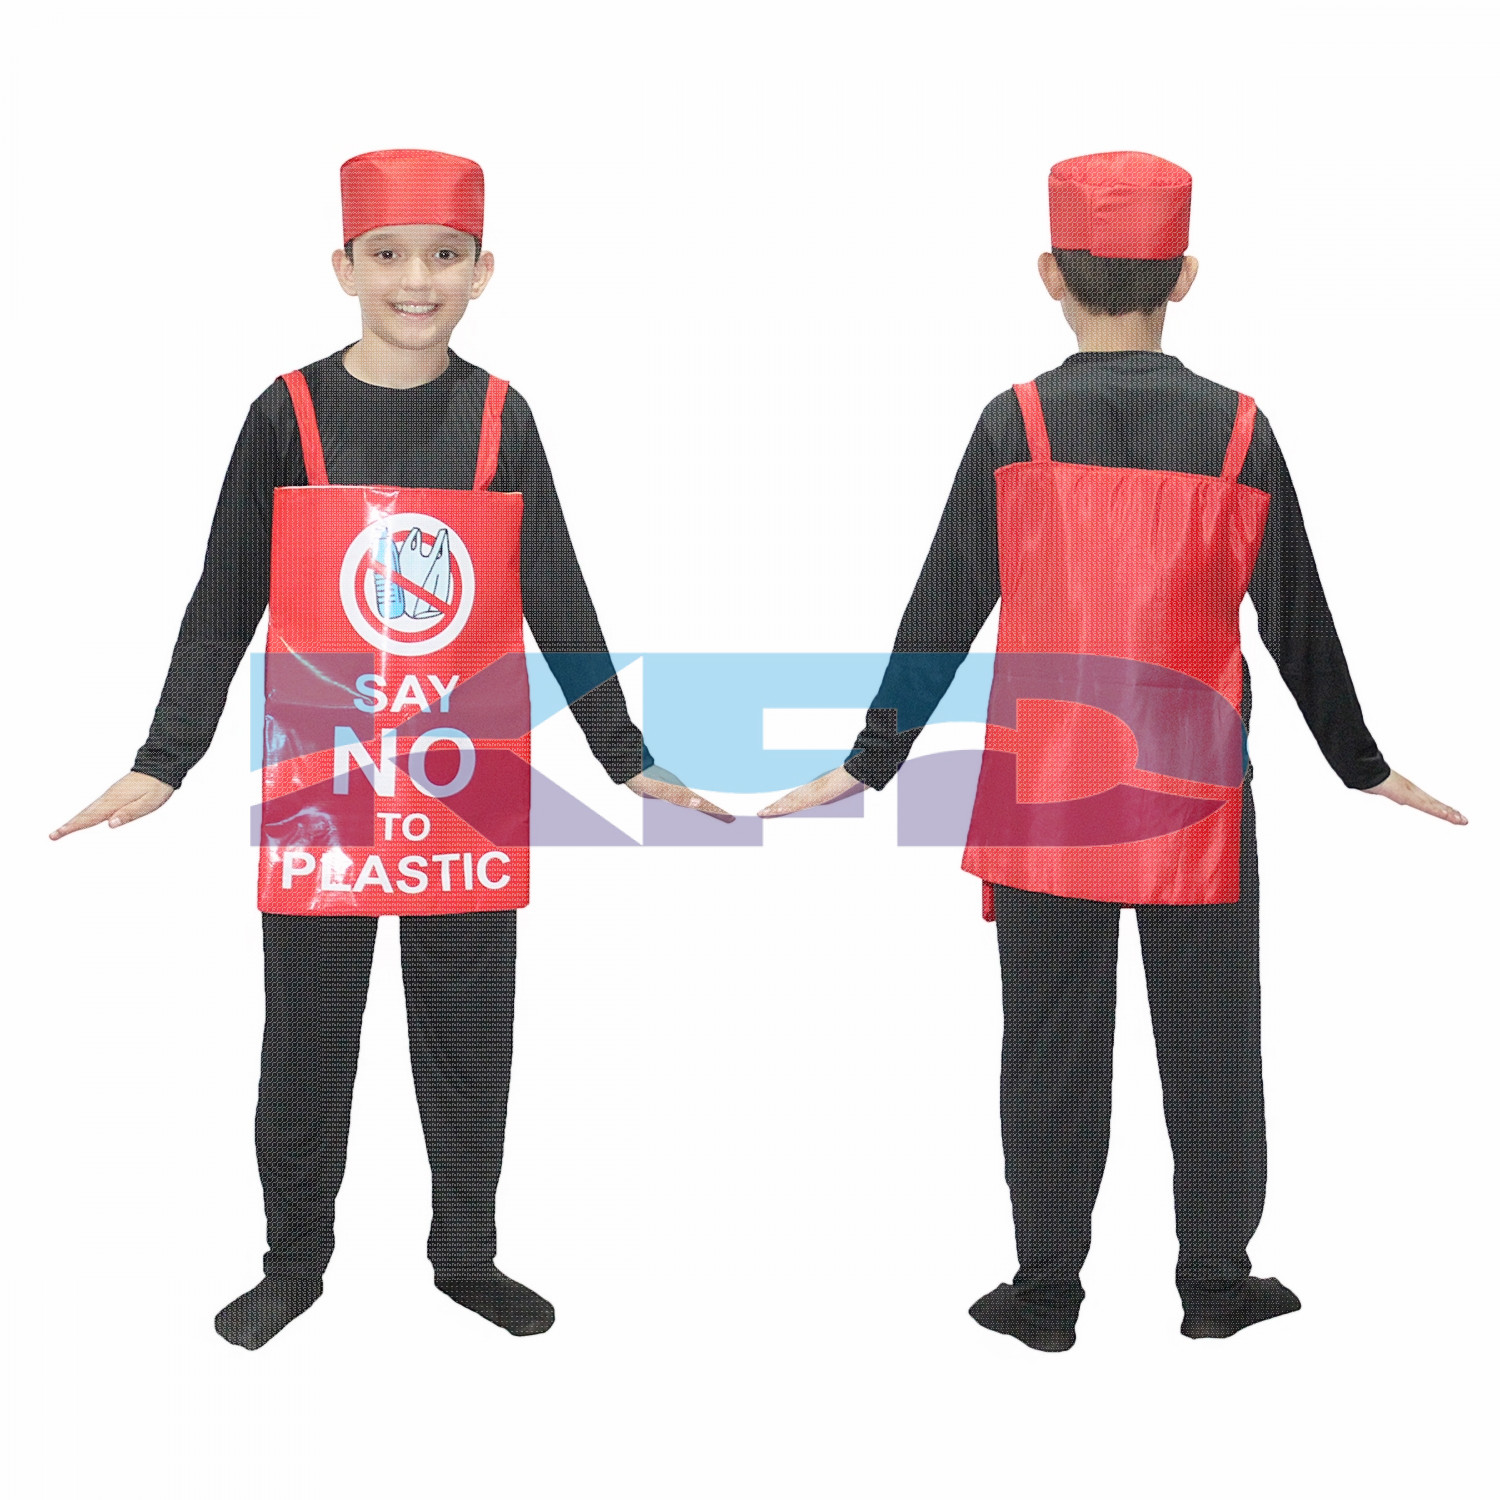 Say No To Plastic Costume For Kids/Social Massage Fancy Dress For Kids/Object Fancy Dress For Kids/For Kids Annual function/Theme Party/Competition/Stage Shows/Birthday Party Dress